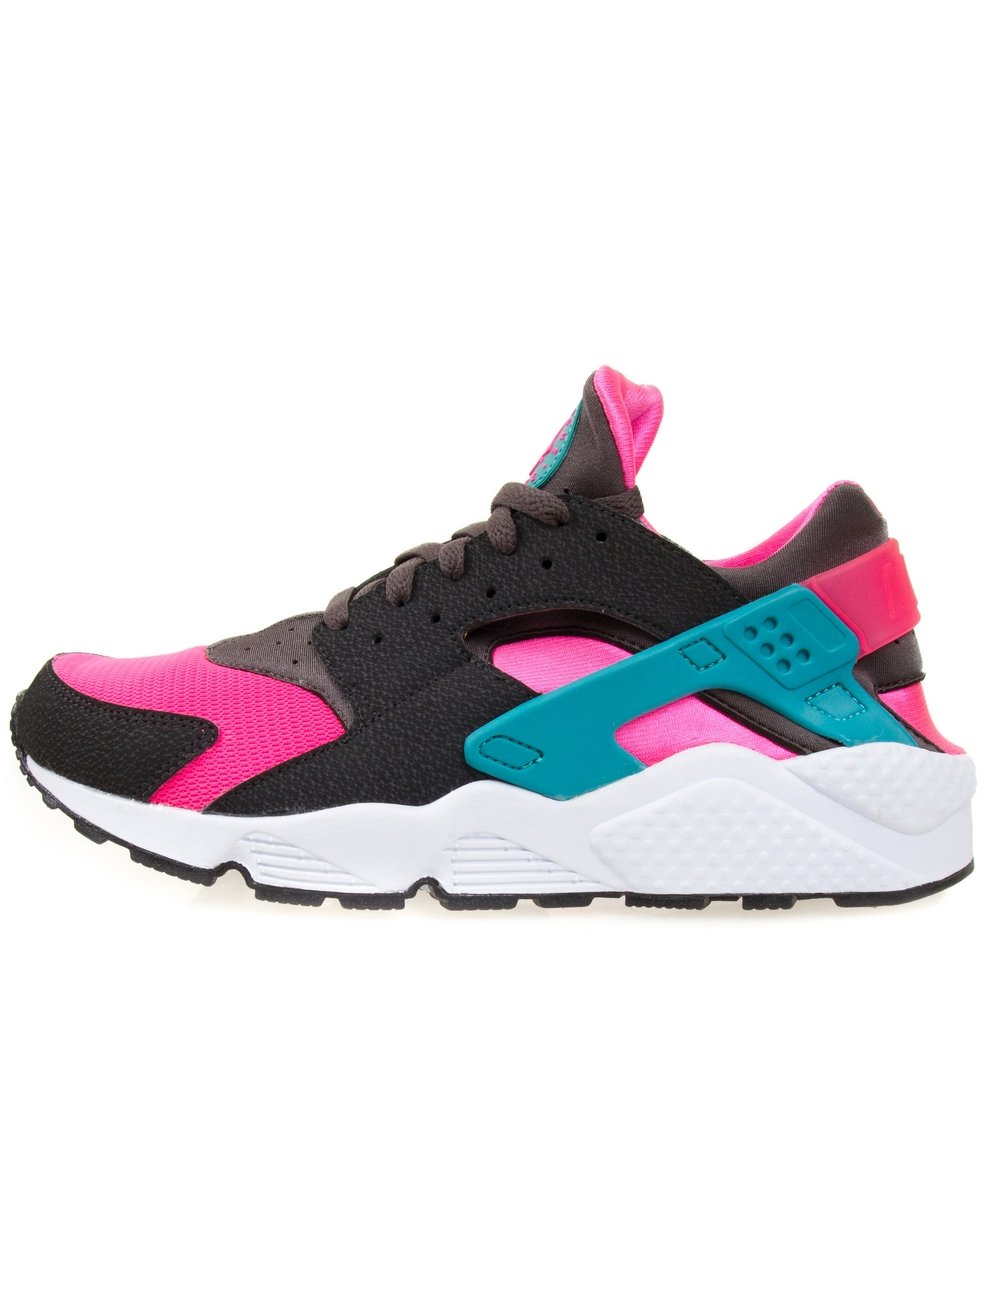 nike air huarache hyper pink trainers from iconsume uk. Black Bedroom Furniture Sets. Home Design Ideas